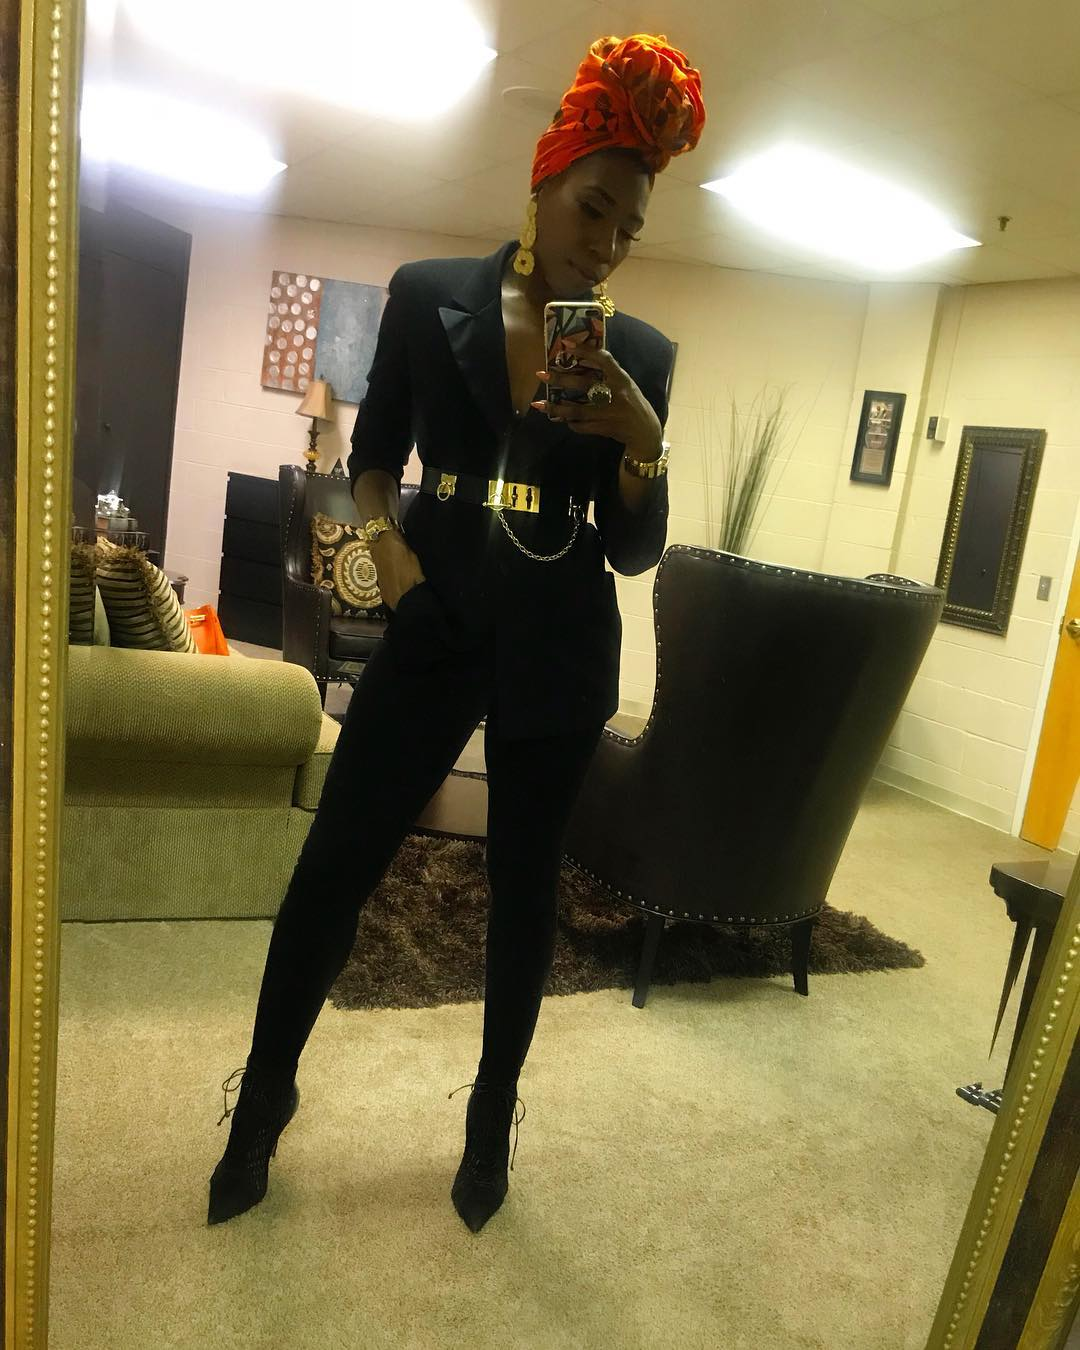 Brandi flaunting her Body physics through mirror selfie. Know more about Brandi height, net worth, wedding, husband, father, Instagram, Twitter, mother, age, siblings and many more